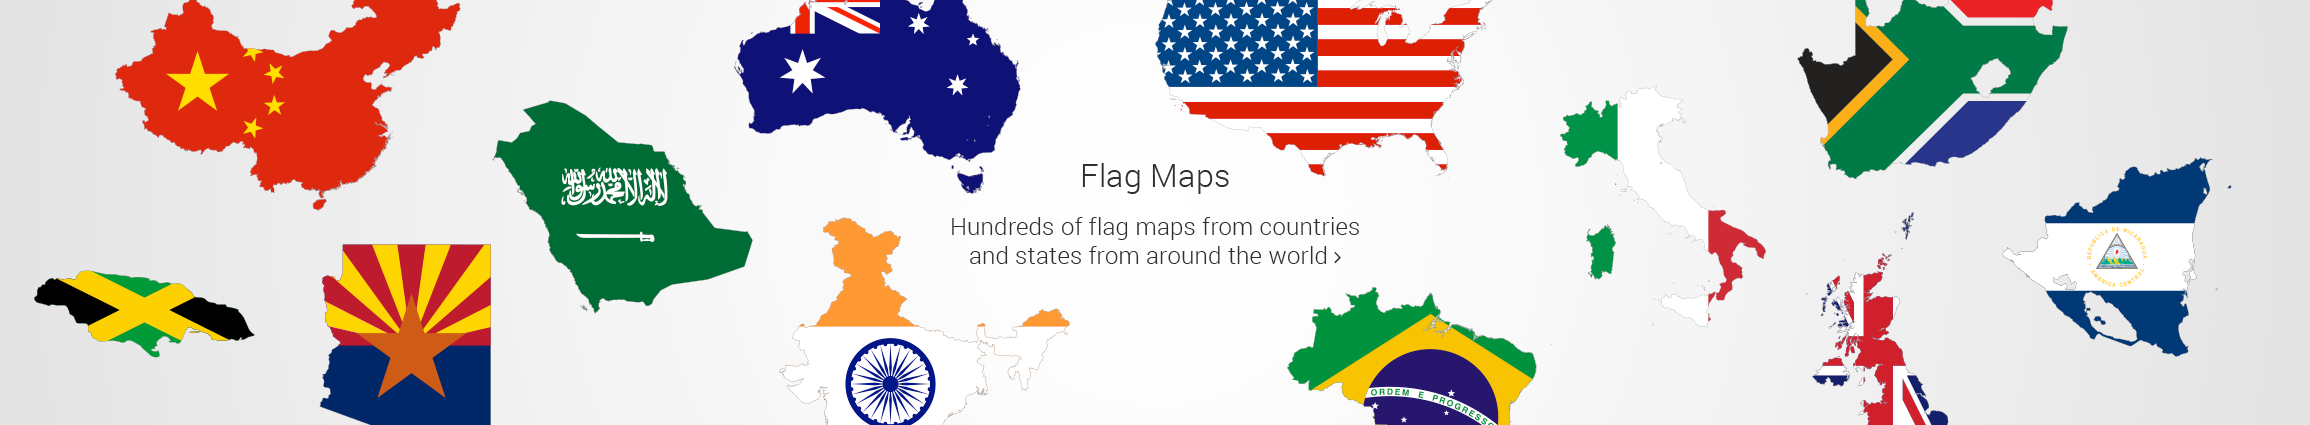 Free vector maps royalty free vector maps flag maps gumiabroncs Image collections